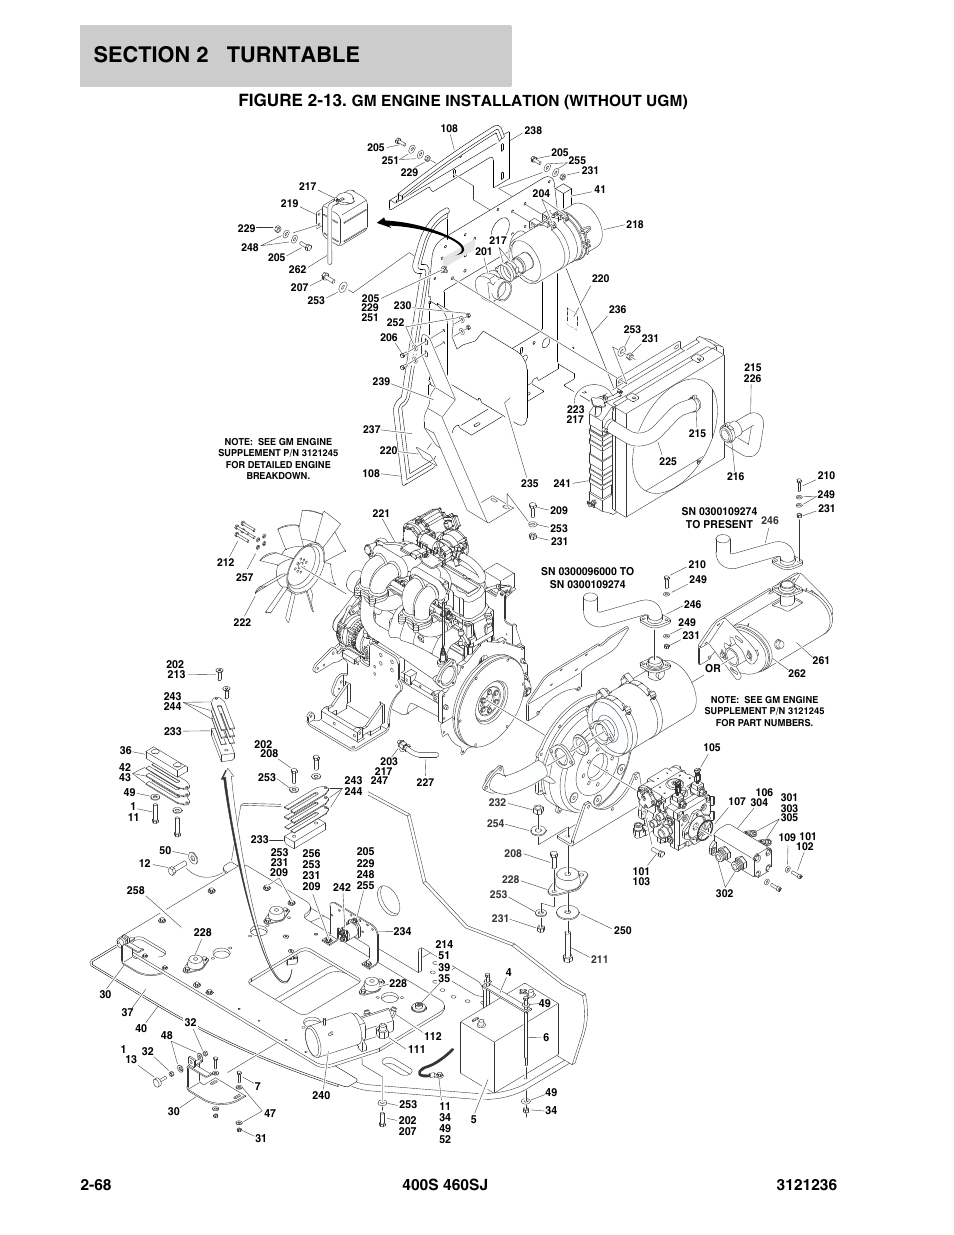 Figure 2-13. gm engine installation (without ugm), Gm